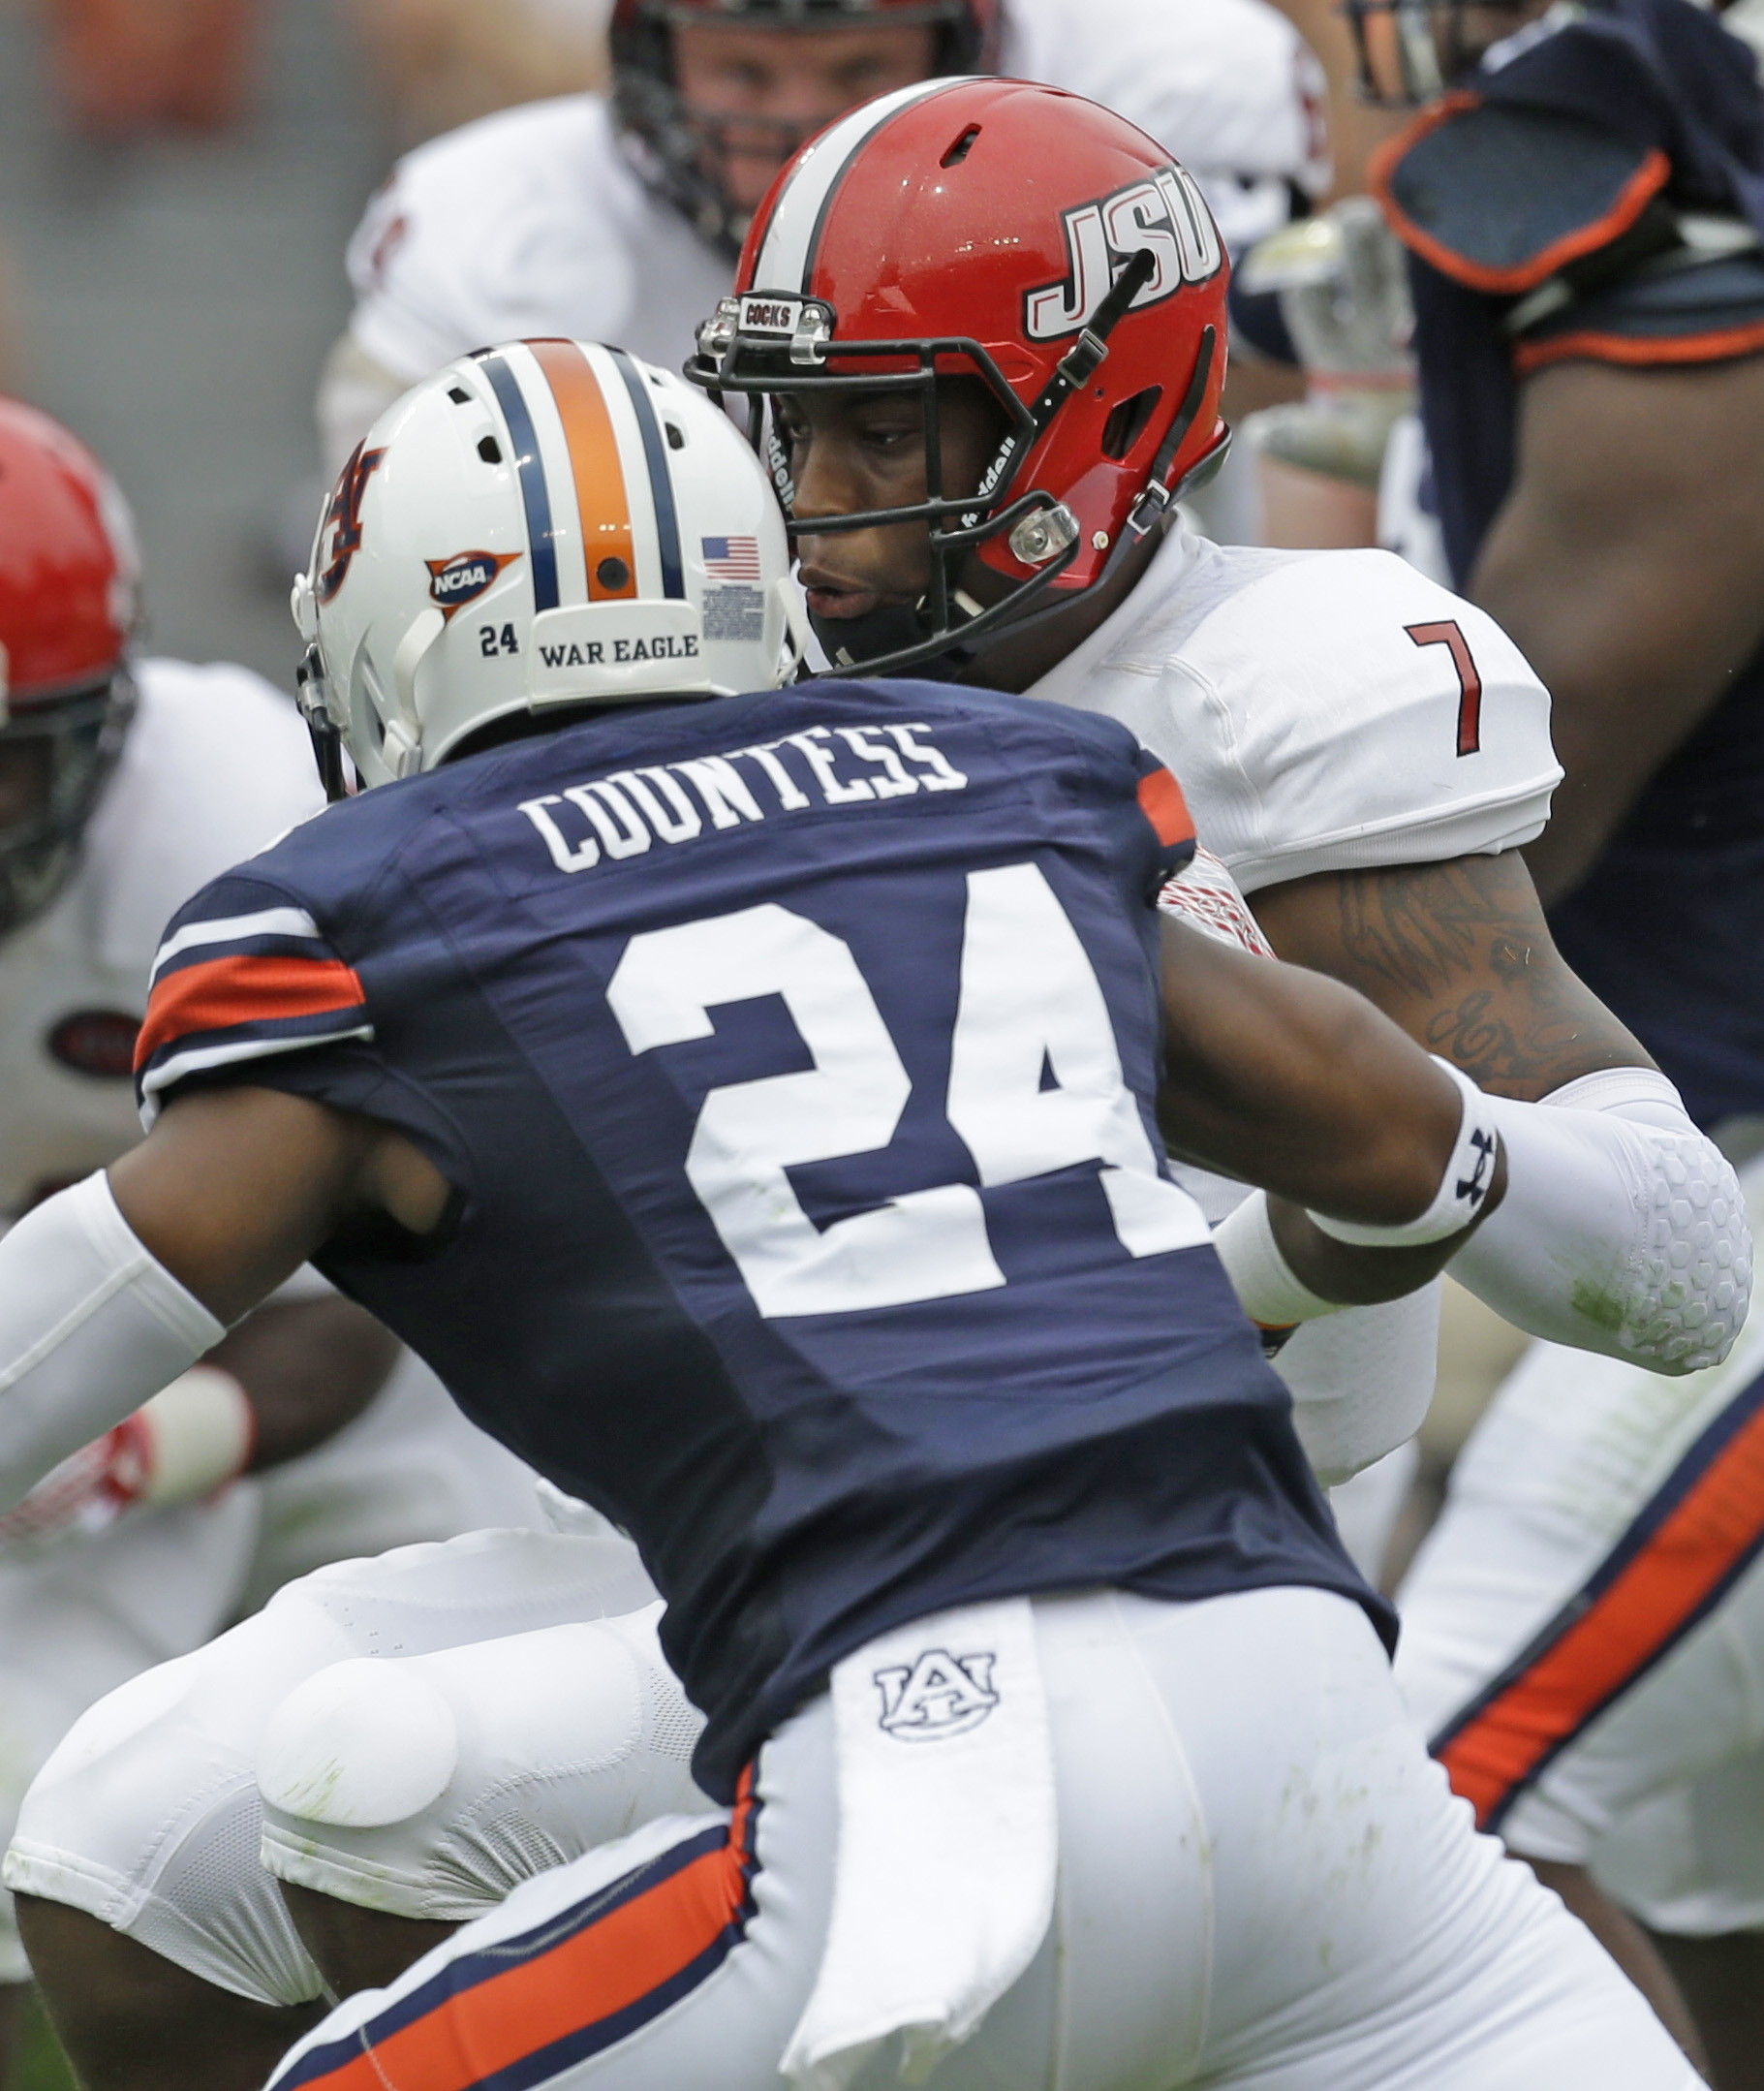 FILE - In this Saturday, Sept. 12, 2015, file photo, Auburn defensive back Blake Countess (24) is called for targeting on this hit to Jacksonville State quarterback Eli Jenkins (7) during the first half of an NCAA college football game in Auburn, Ala. The